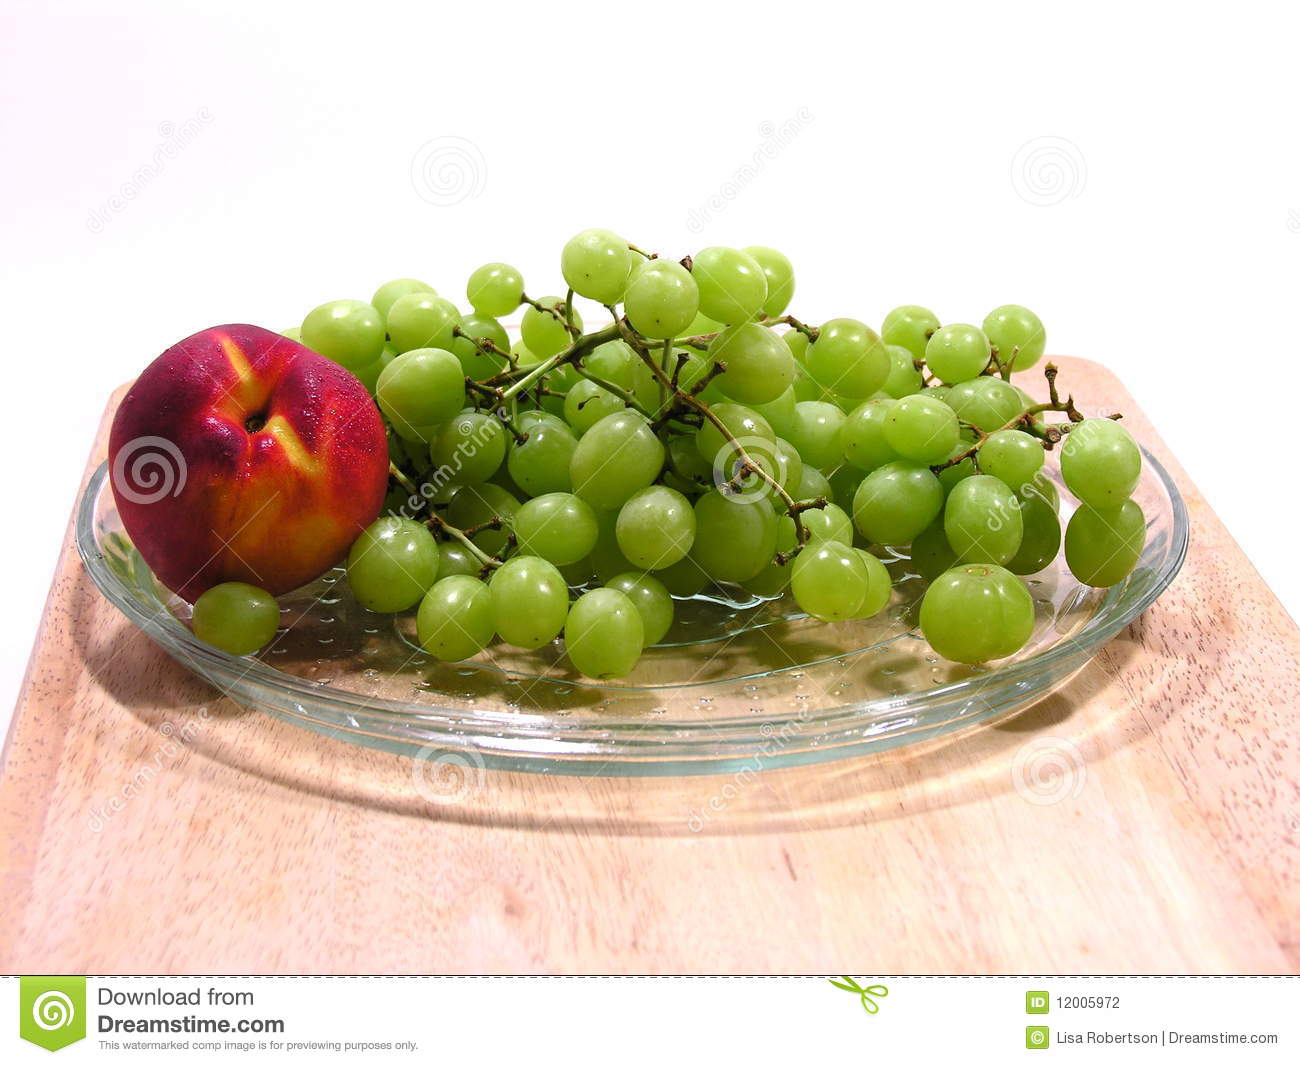 Green Grapes and Nectarine or Peach